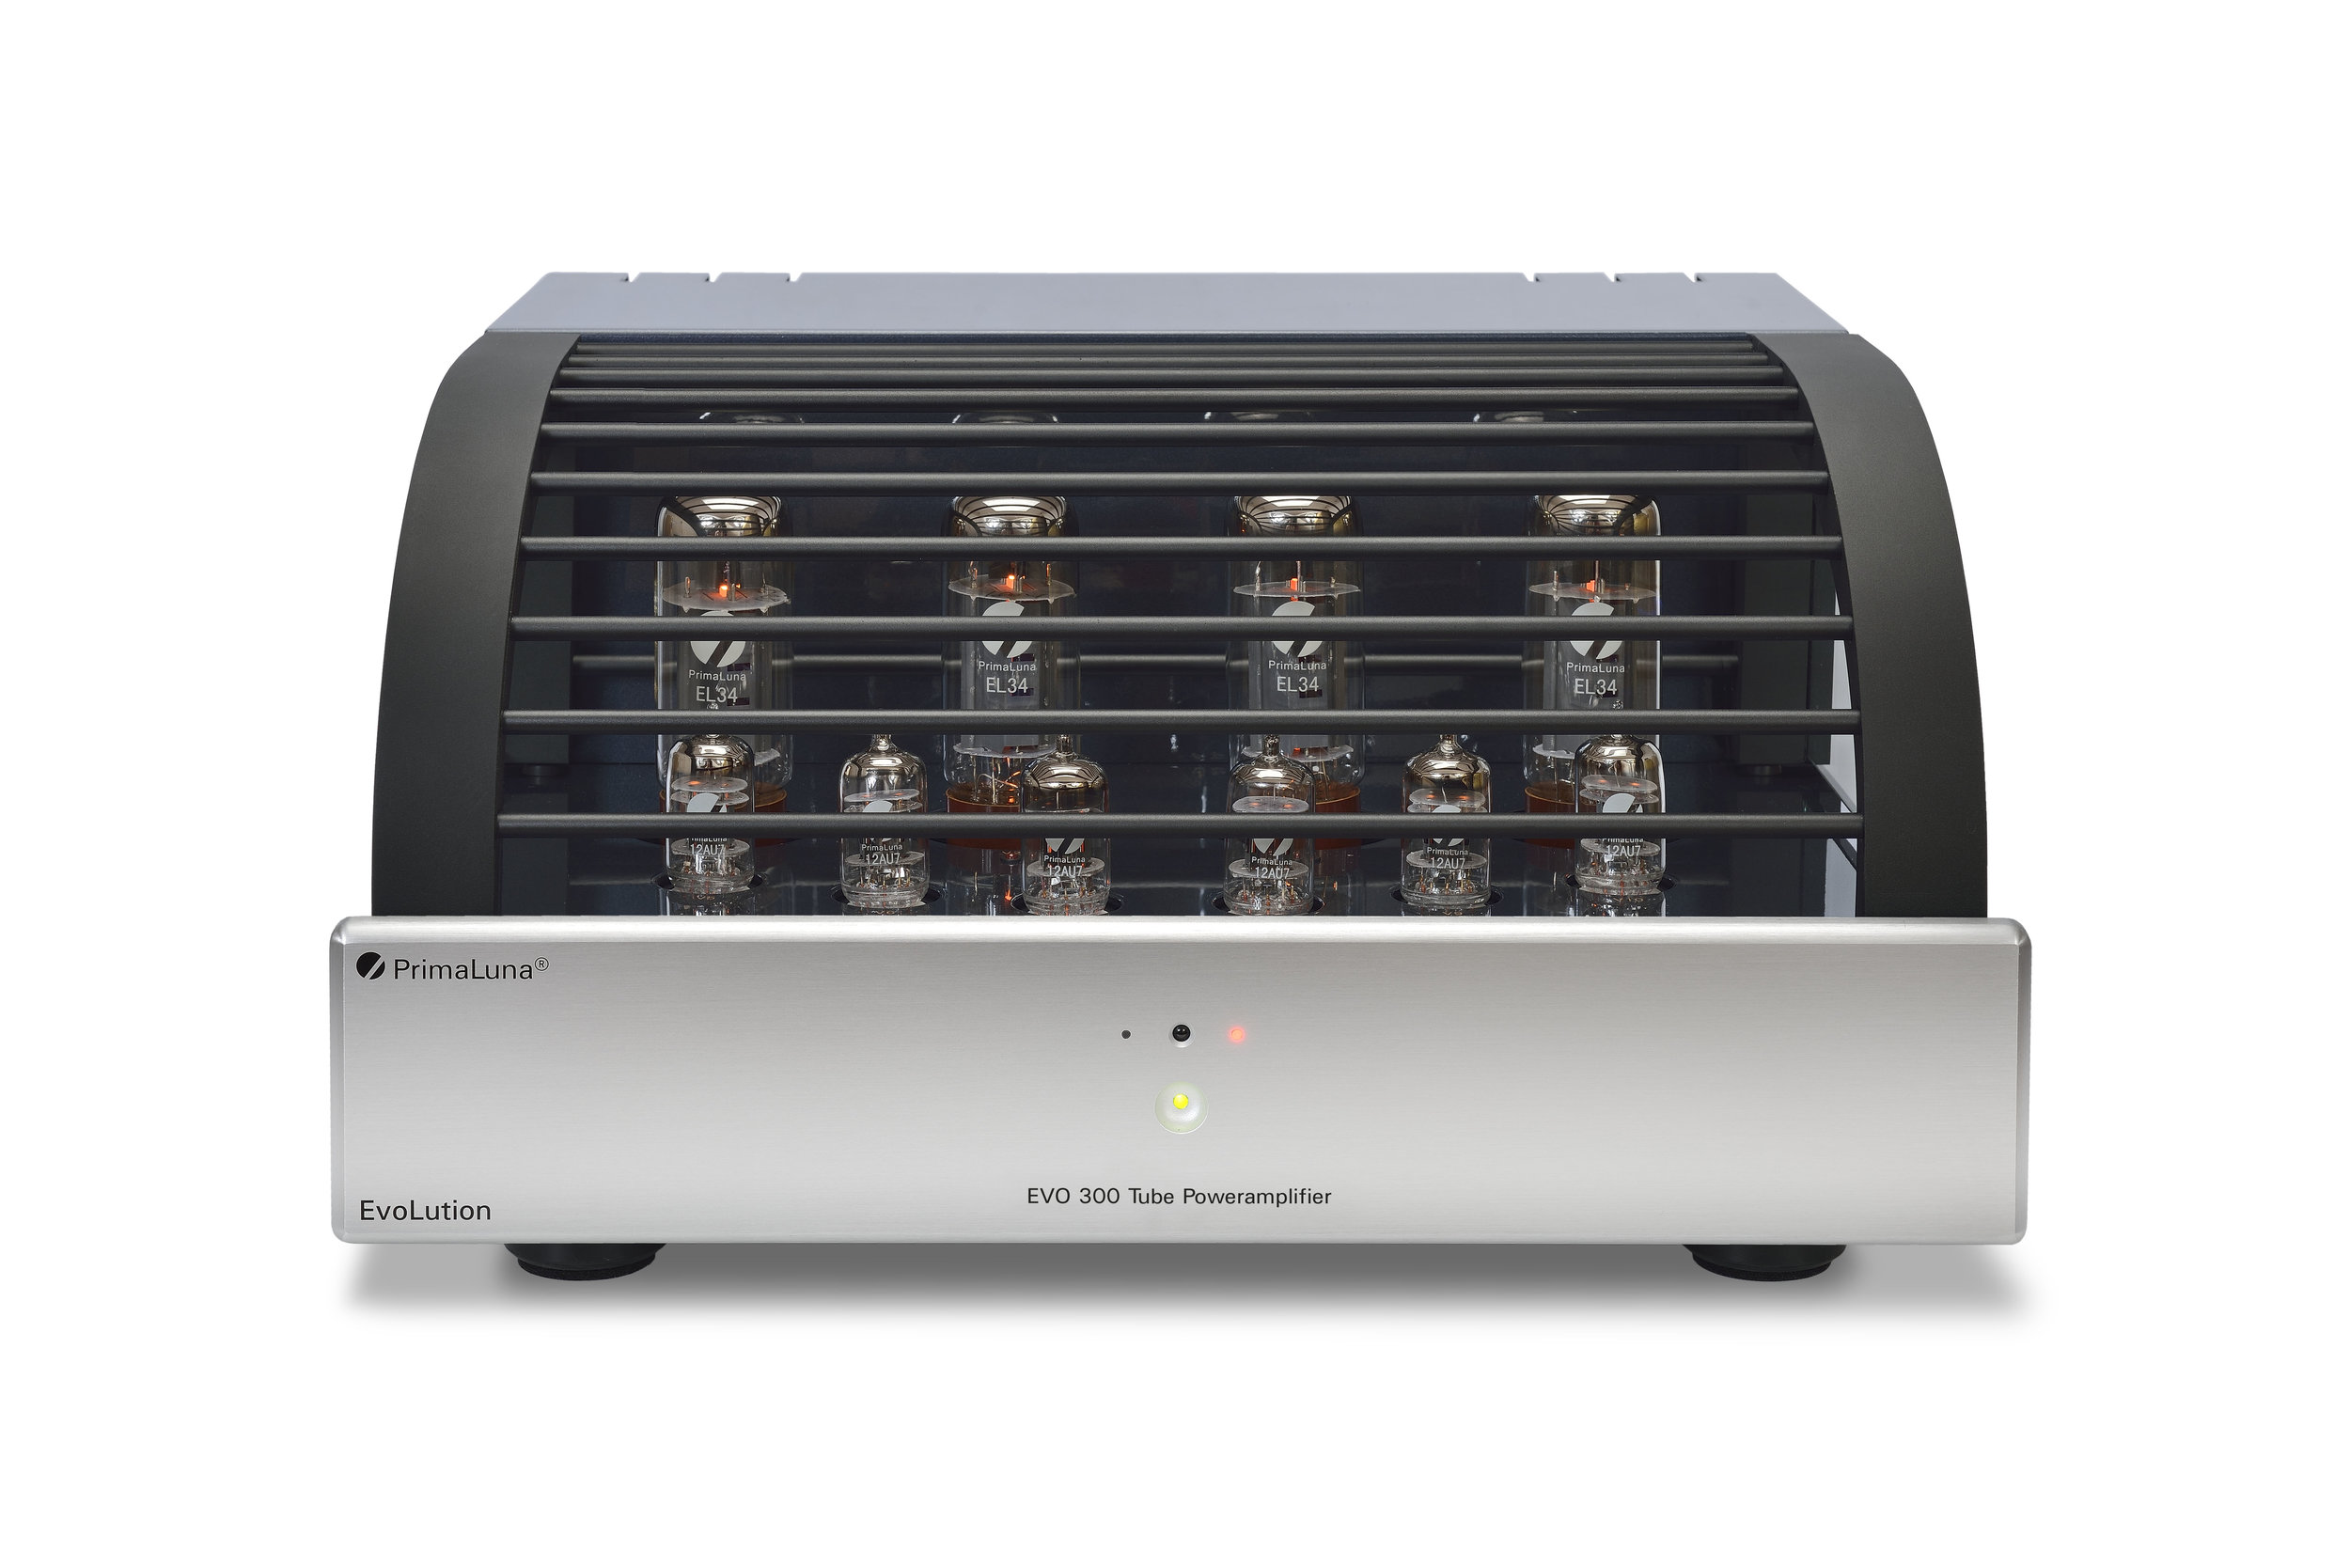 033b - PrimaLuna Evo 300 Tube Poweramplifier - silver - front - white background.jpg